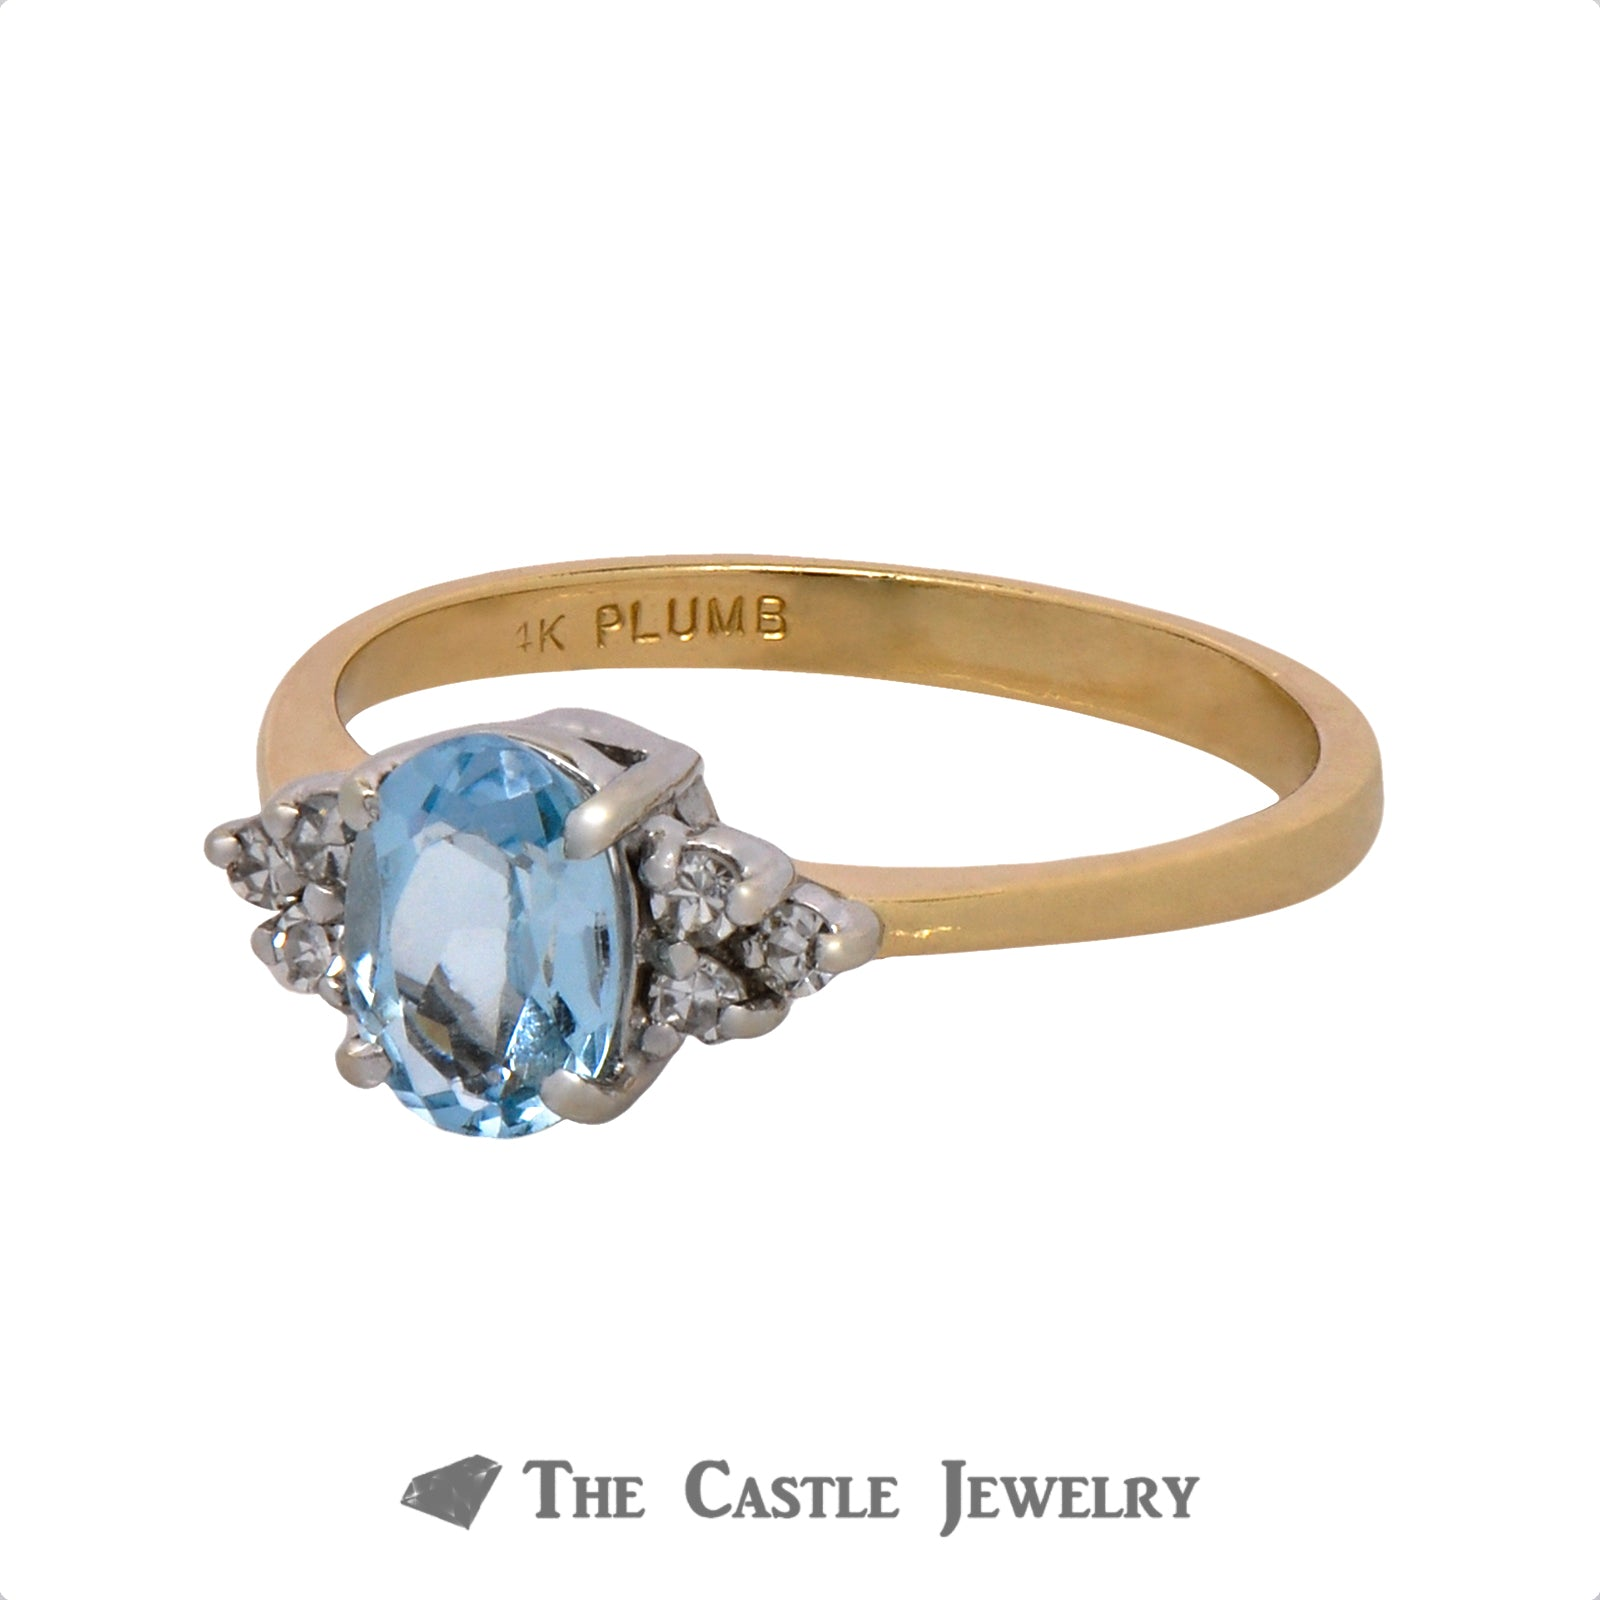 Oval Aquamarine Ring with .09cttw Double Diamond Cluster Accents in 14k Yellow Gold-2